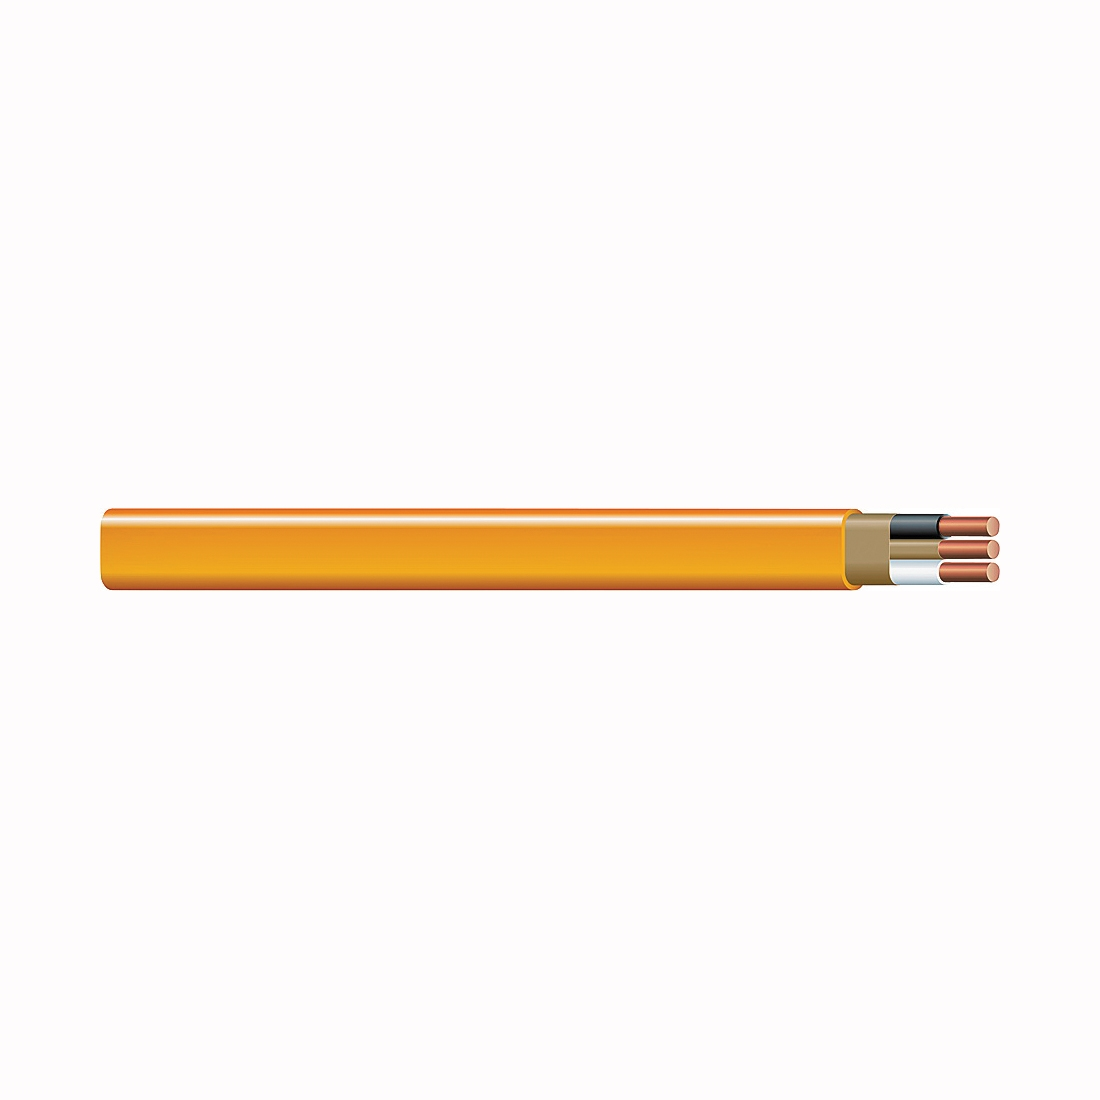 Picture of Southwire 10/2NM-WGX25 Sheathed Cable, 10 AWG Wire, 2-Conductor, Copper Conductor, PVC Insulation, Nylon Sheath